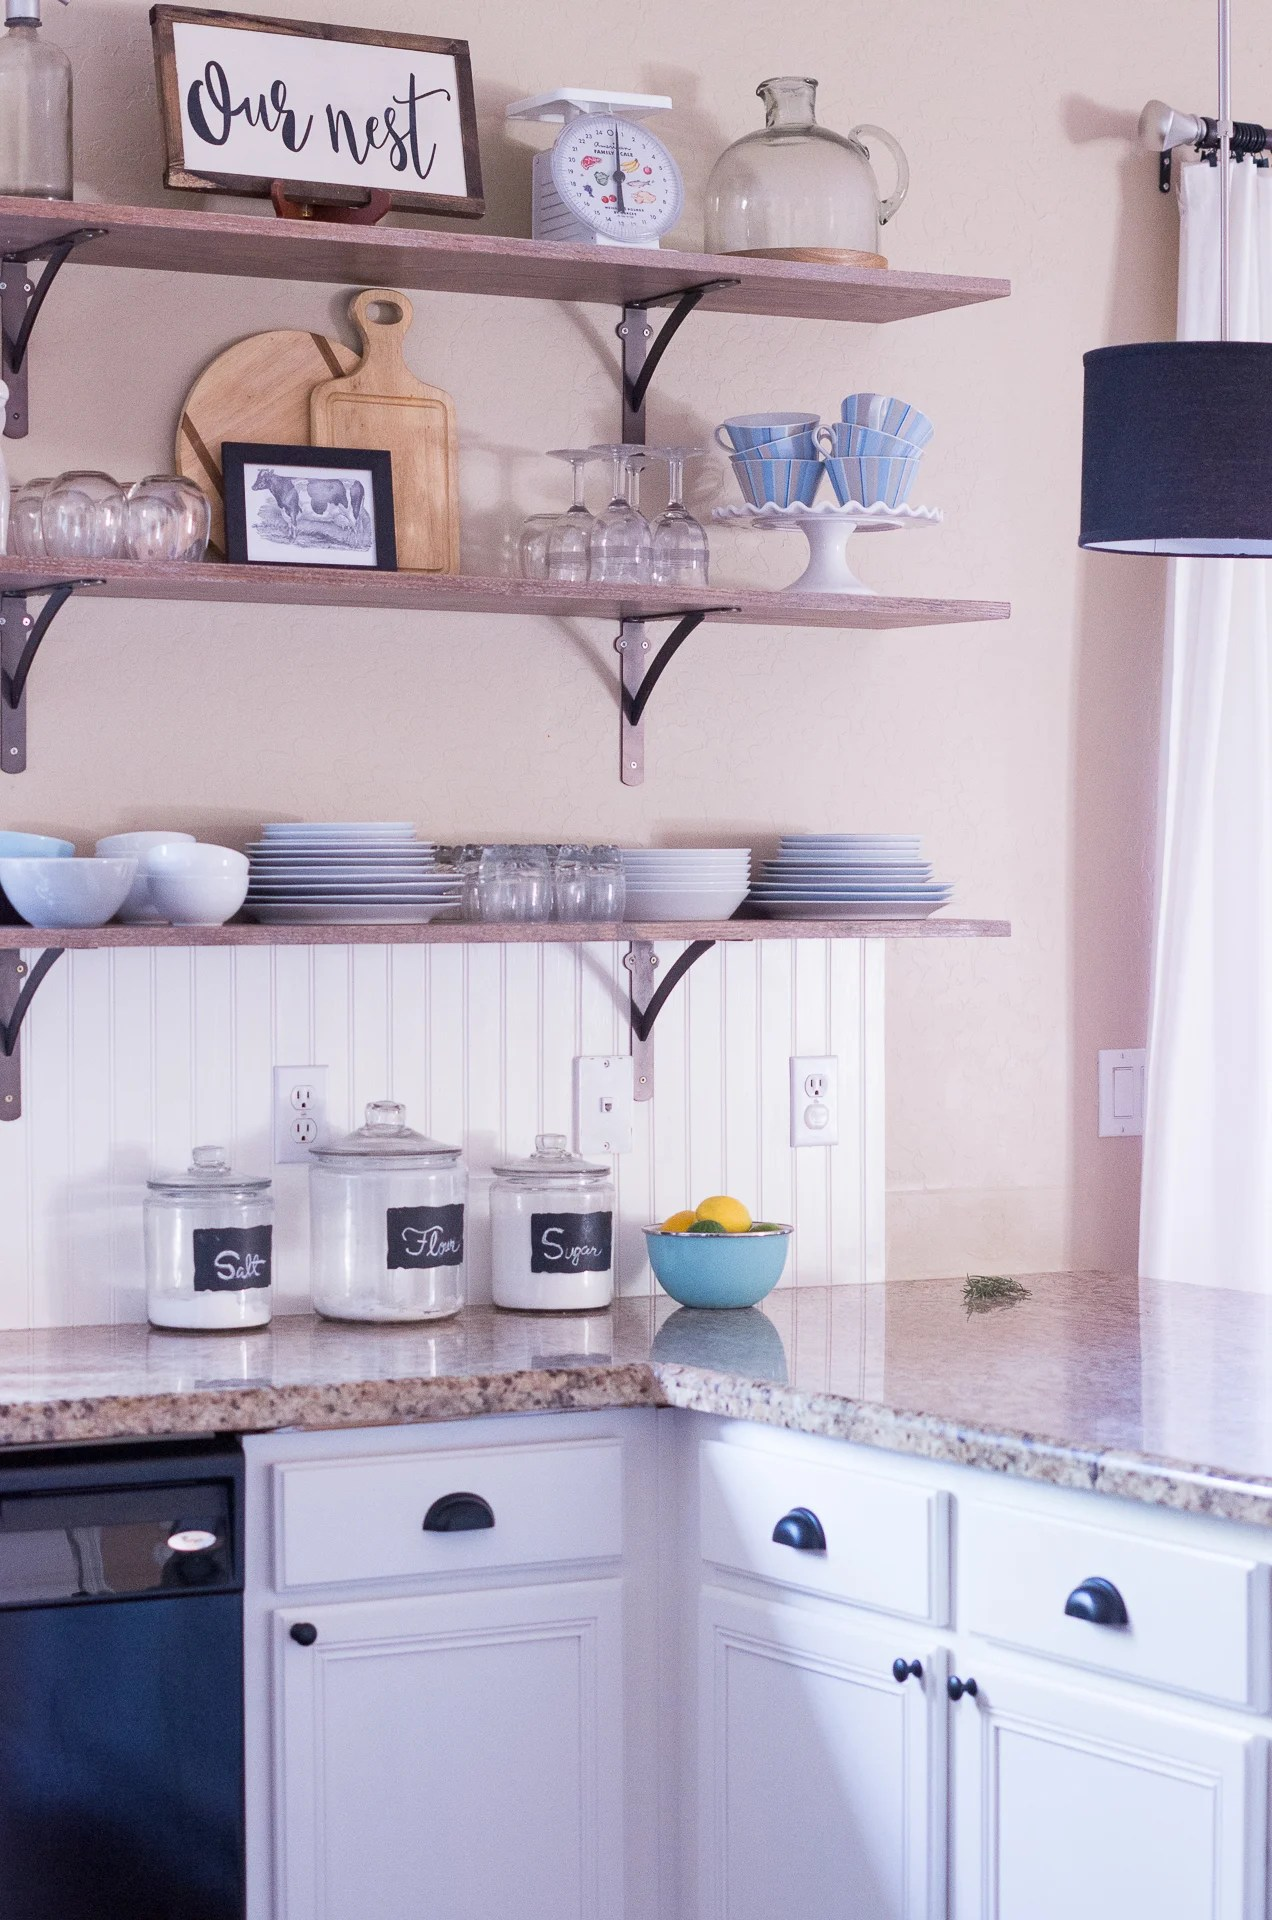 Kitchen Shelves Instead Of Cabinets 6 Creative Storage Solutions For A Kitchen With No Upper